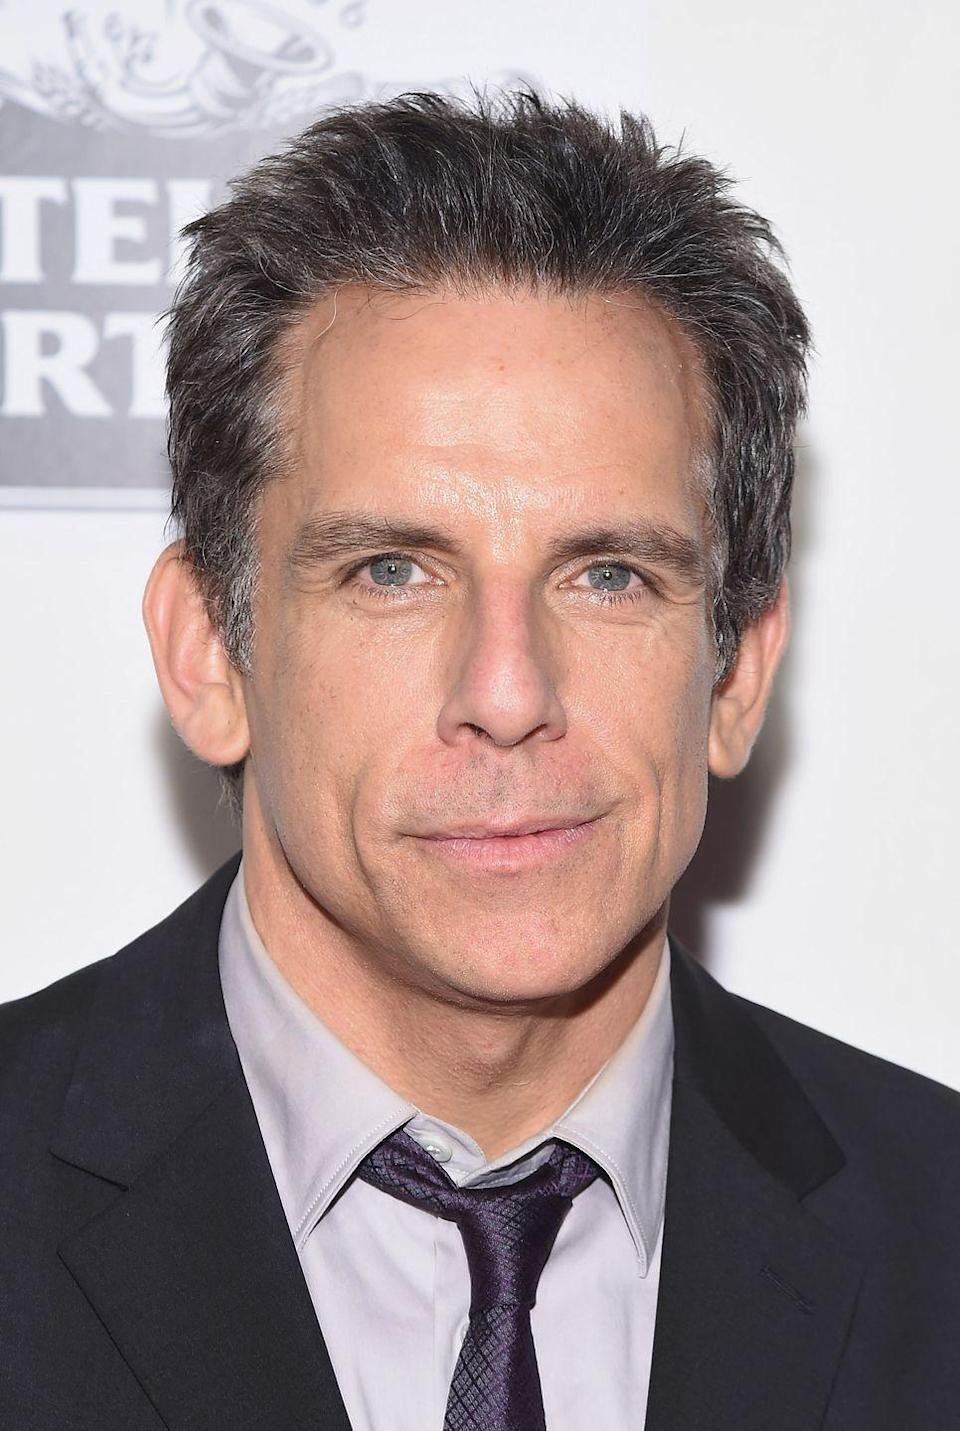 <p>Stiller's sprinkling of gray in his short cut is a lesson to us all on how to age tastefully.</p>